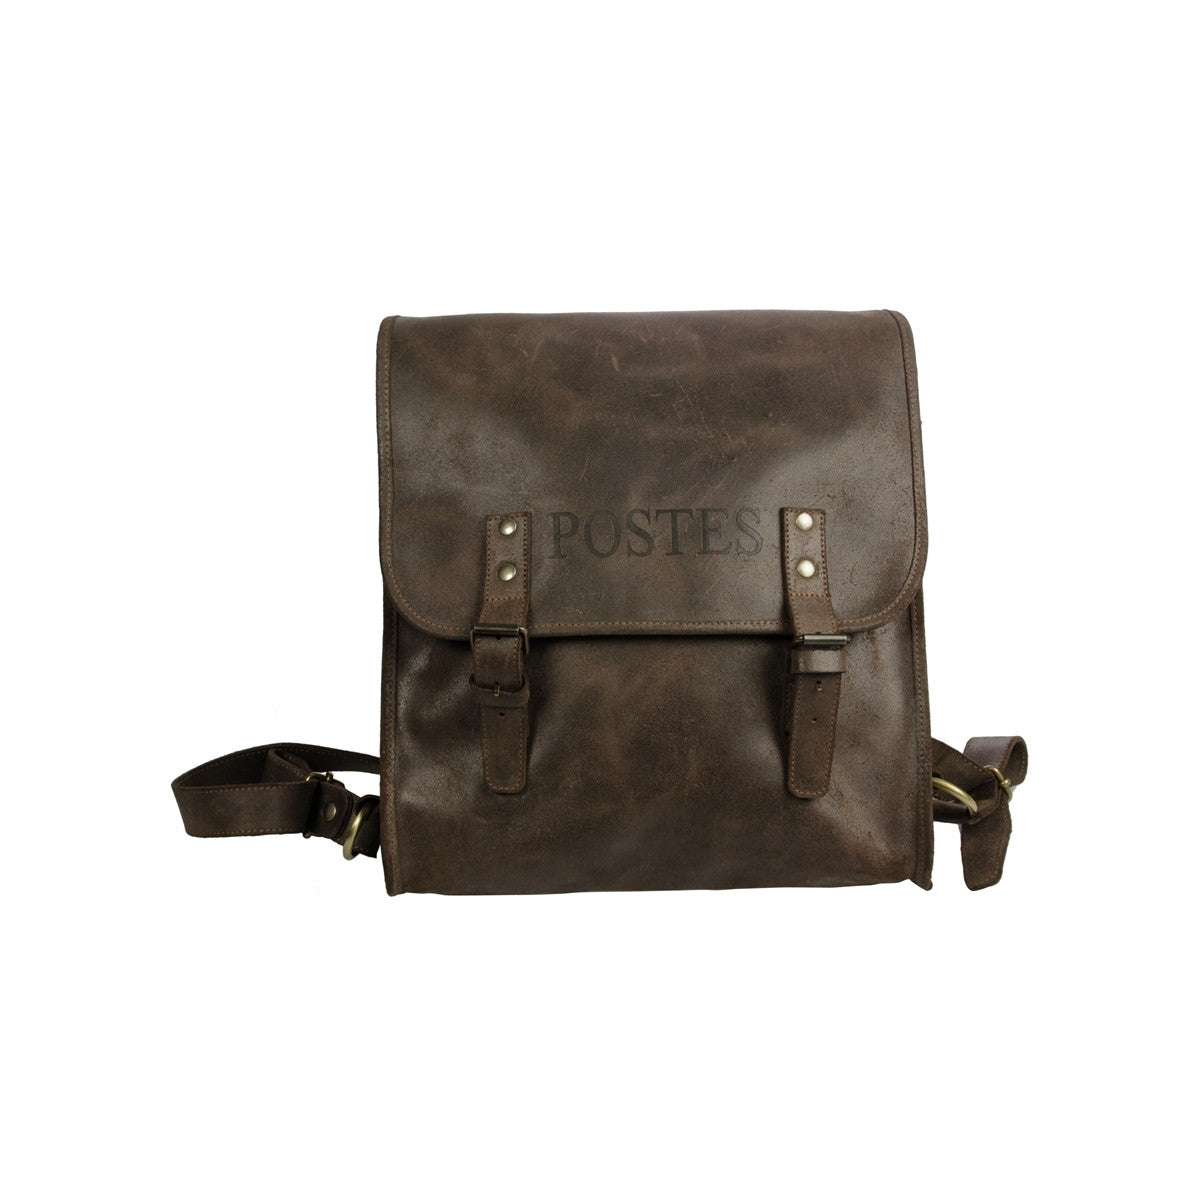 Grande Musette en Cuir Made in France par CODE POSTAL